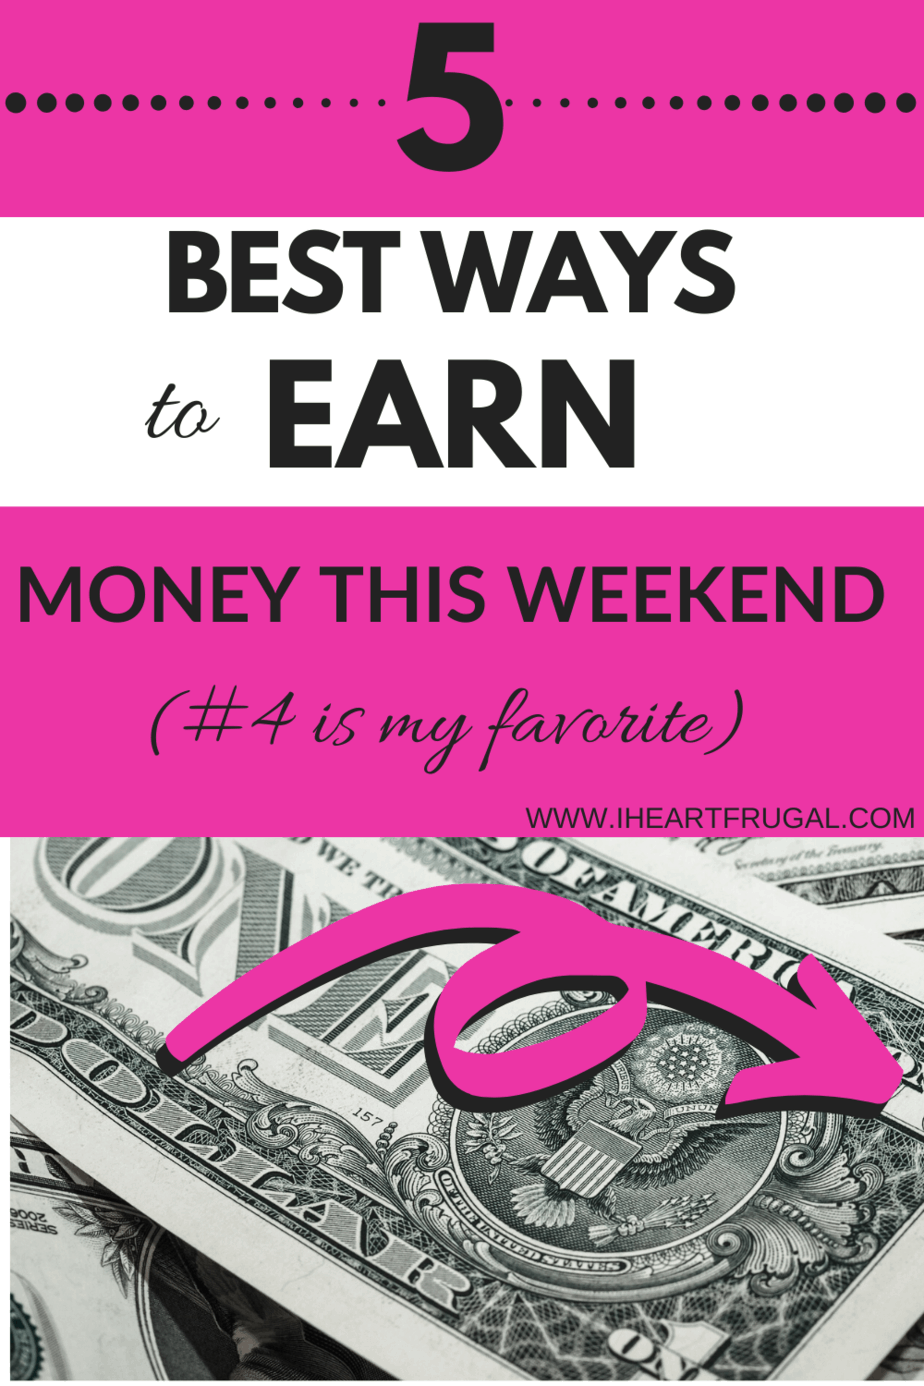 5 Best Ways to Earn Money From Home This Weekend